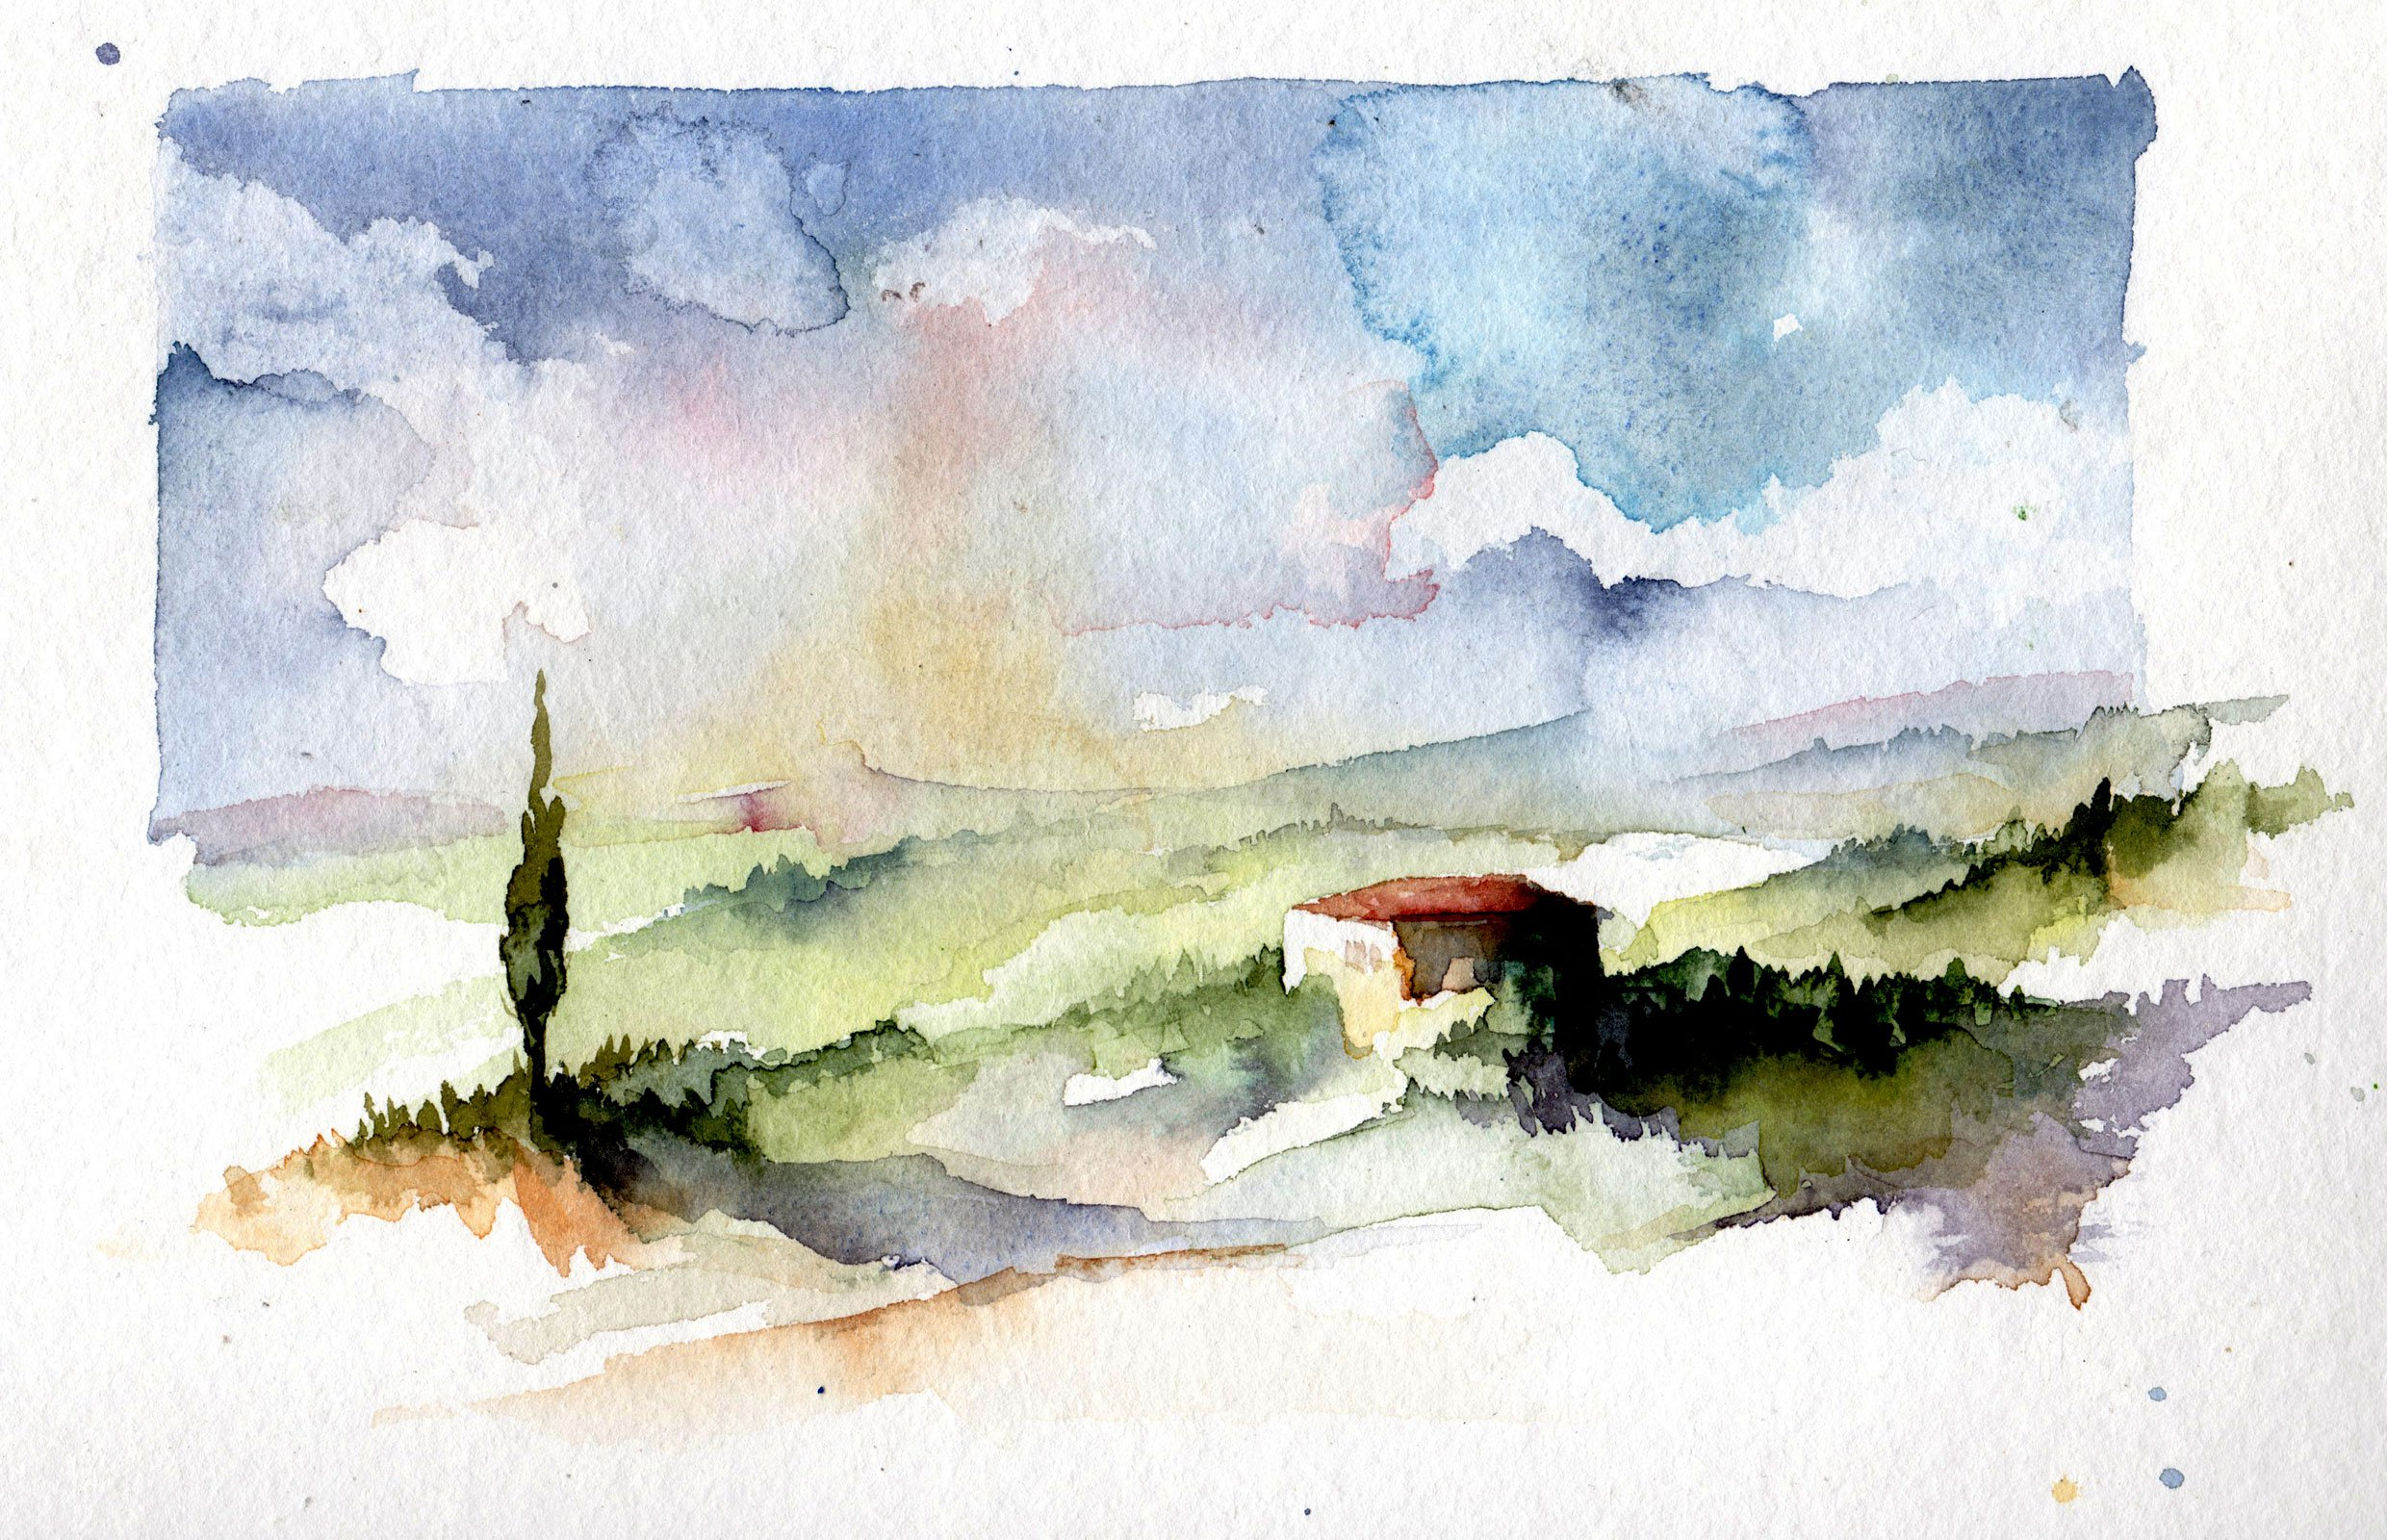 aquarell watercolours workshop berlin gris